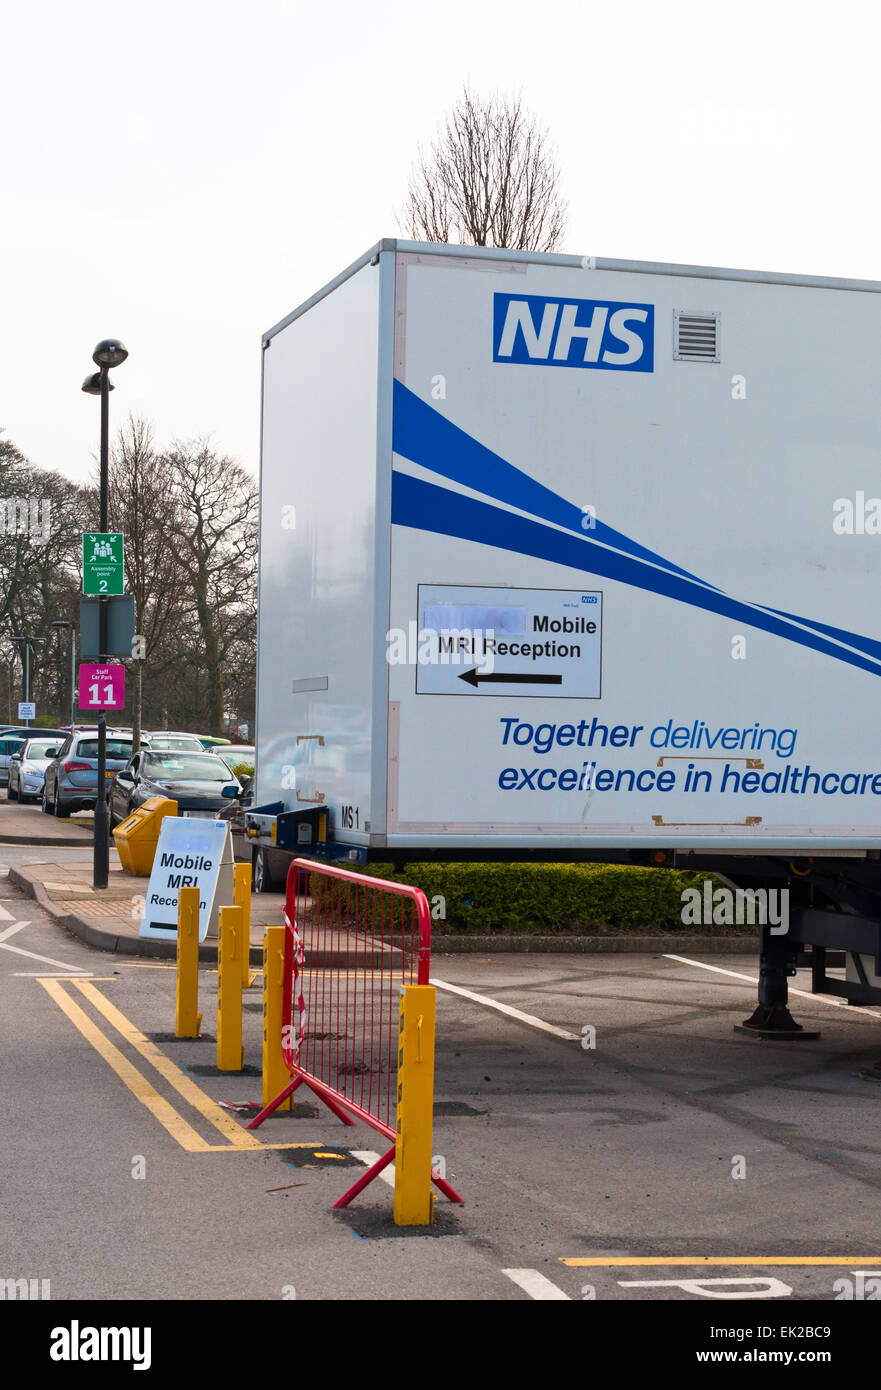 Mobile MRI scanning unit in a hospital car park vertical view - Stock Image